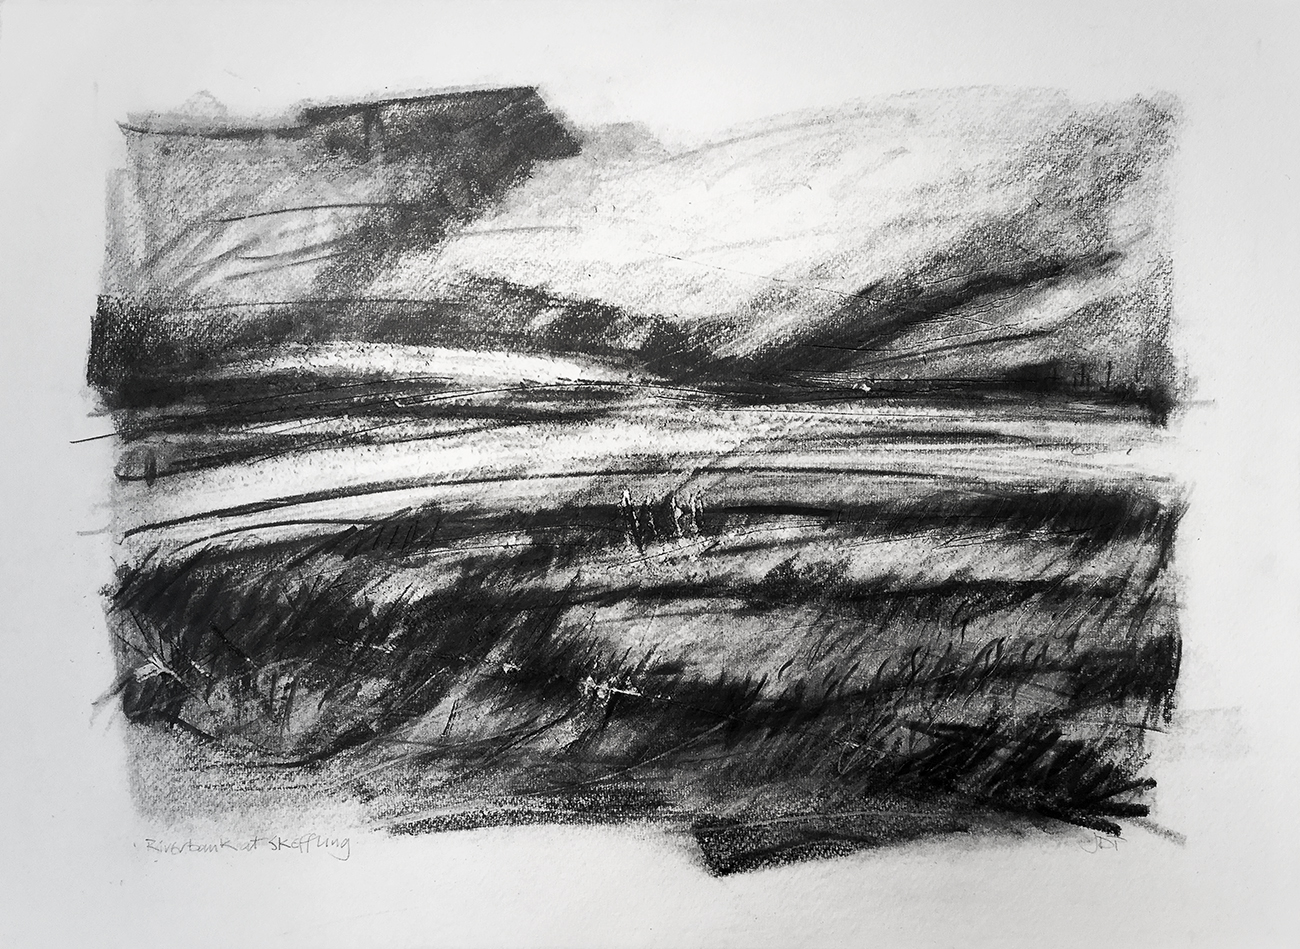 Riverbank at Skeffling, John D. Petty A drawing done in 2017, with some reference to a sketch done in 2015 but mostly from memory. Not, strictly-speaking agricultural although the fields do come right up to the river bank. There are wide, open views across the Humber Estuary and It's a place I visit regularly.Graphite on paper, 30x22 inches.